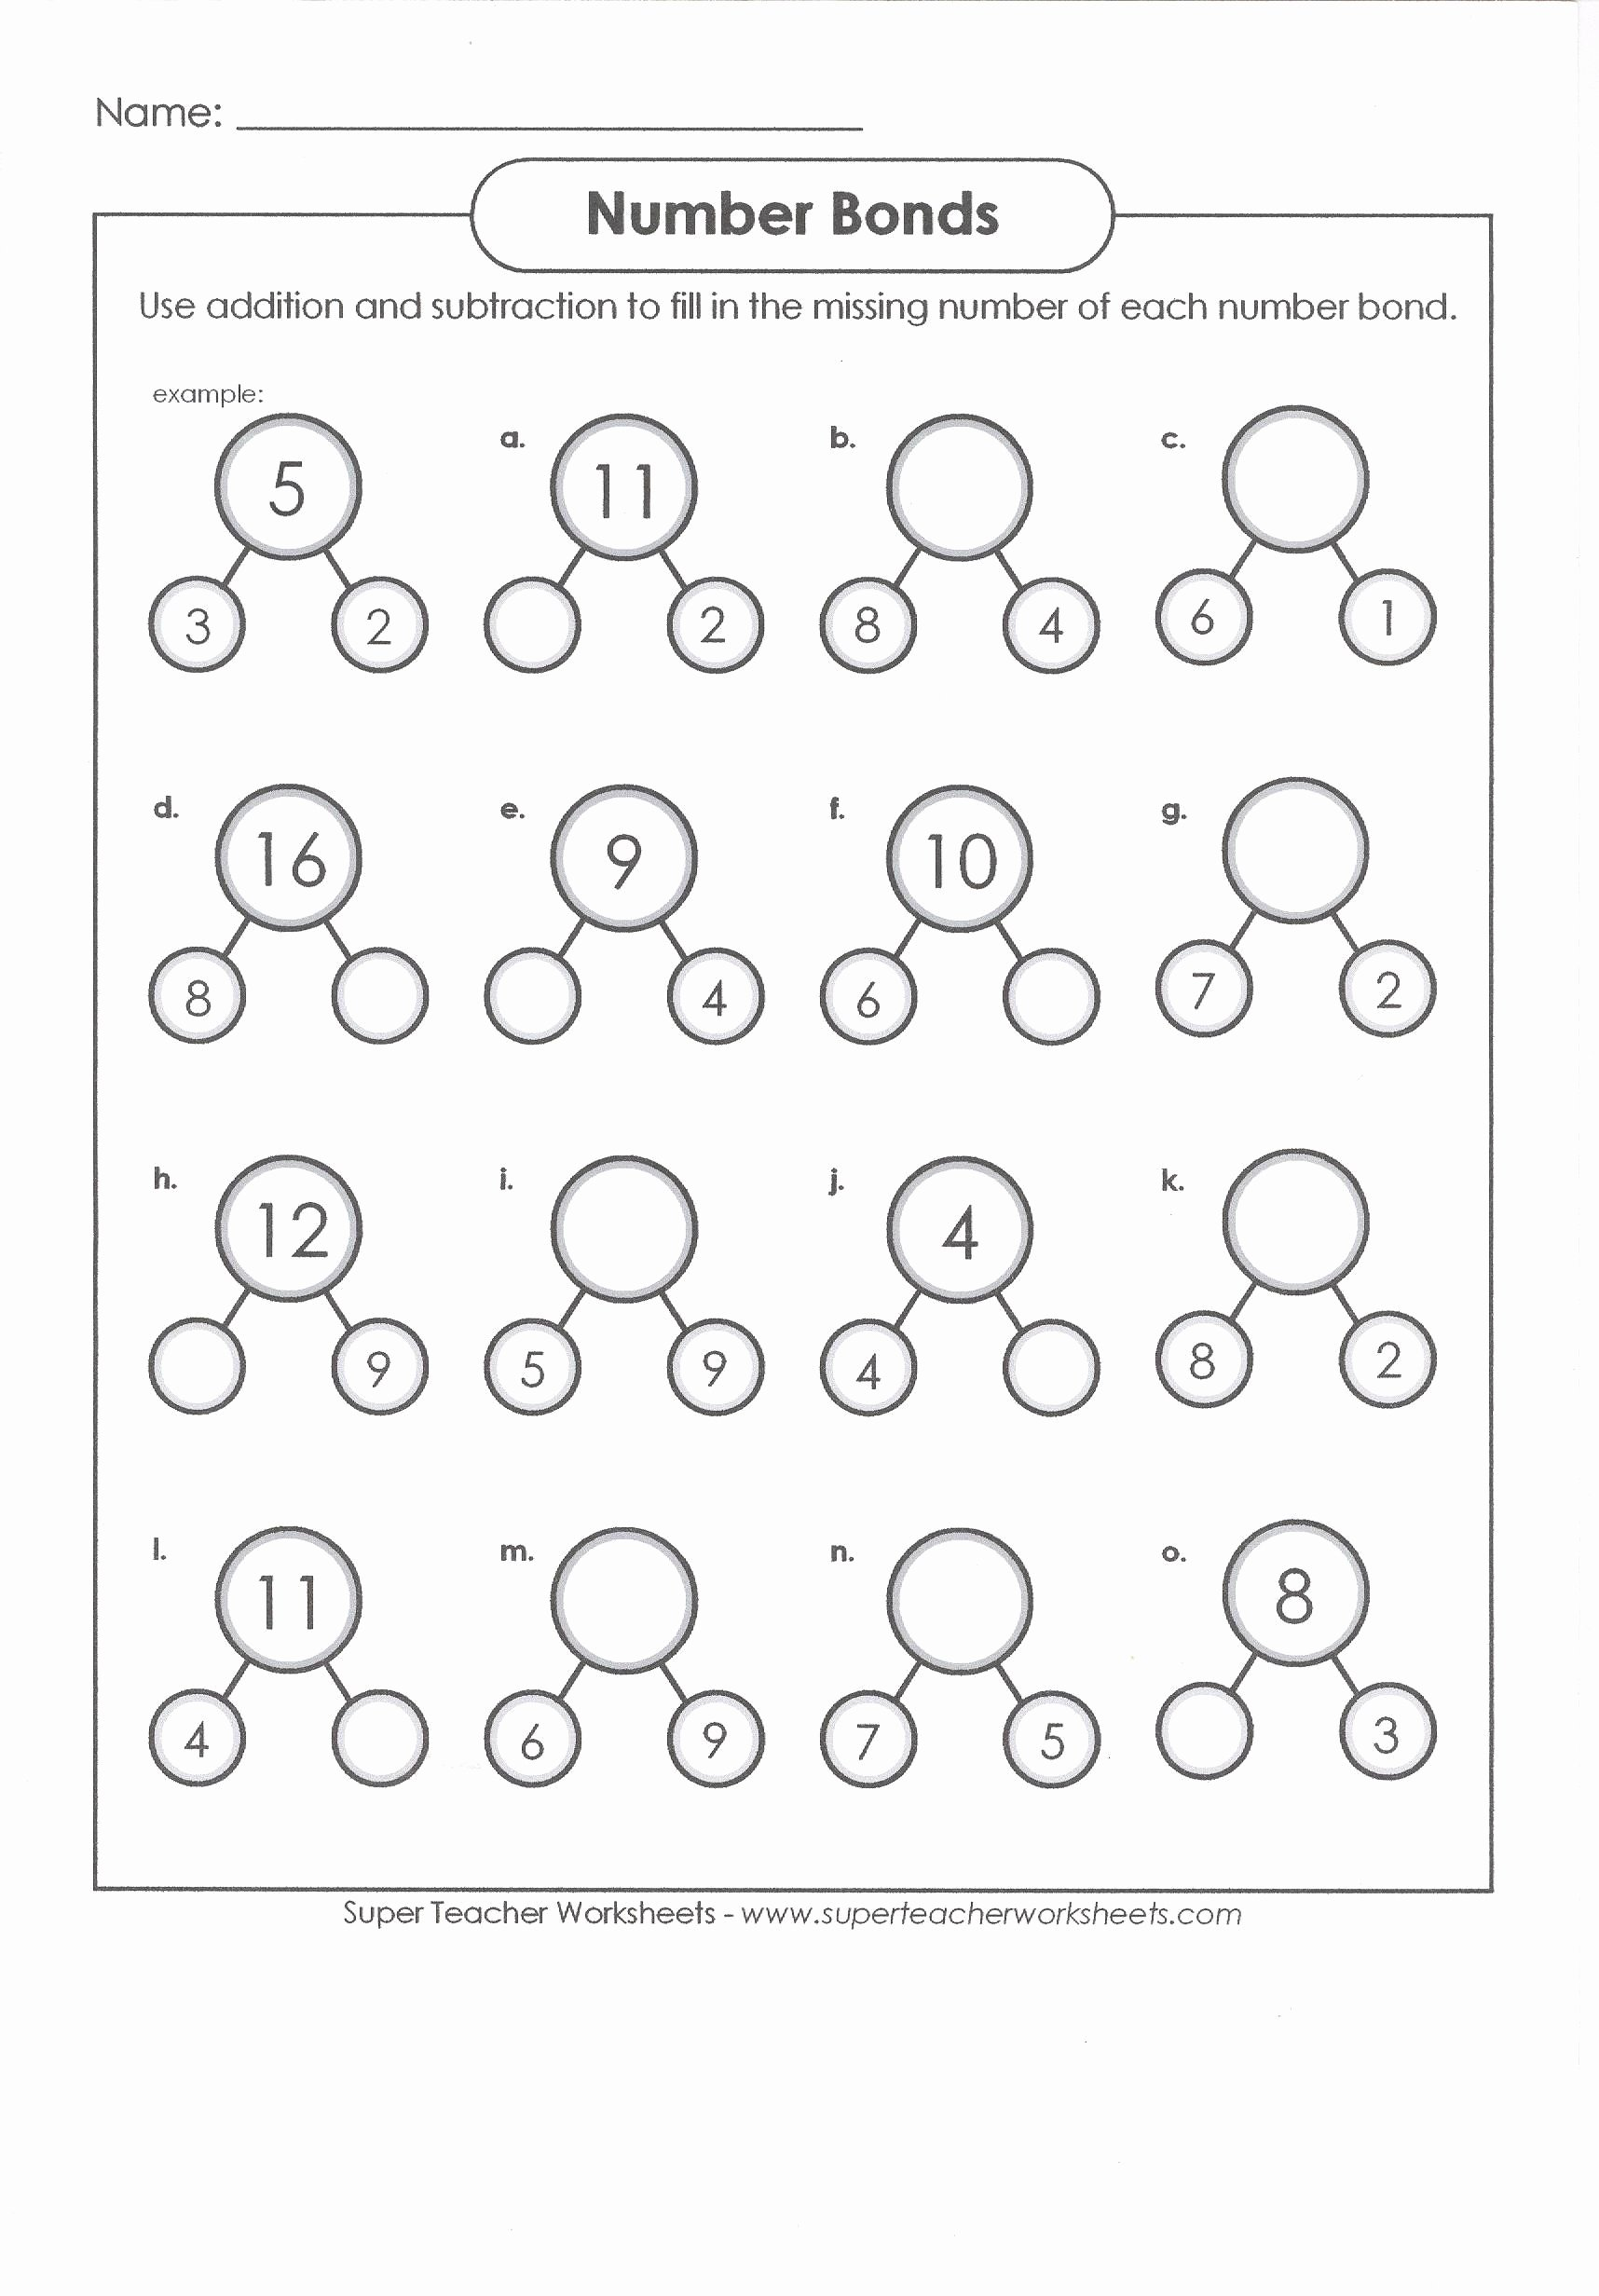 Composing and Decomposing Numbers Worksheet Printable Pin On Number Line Worksheet